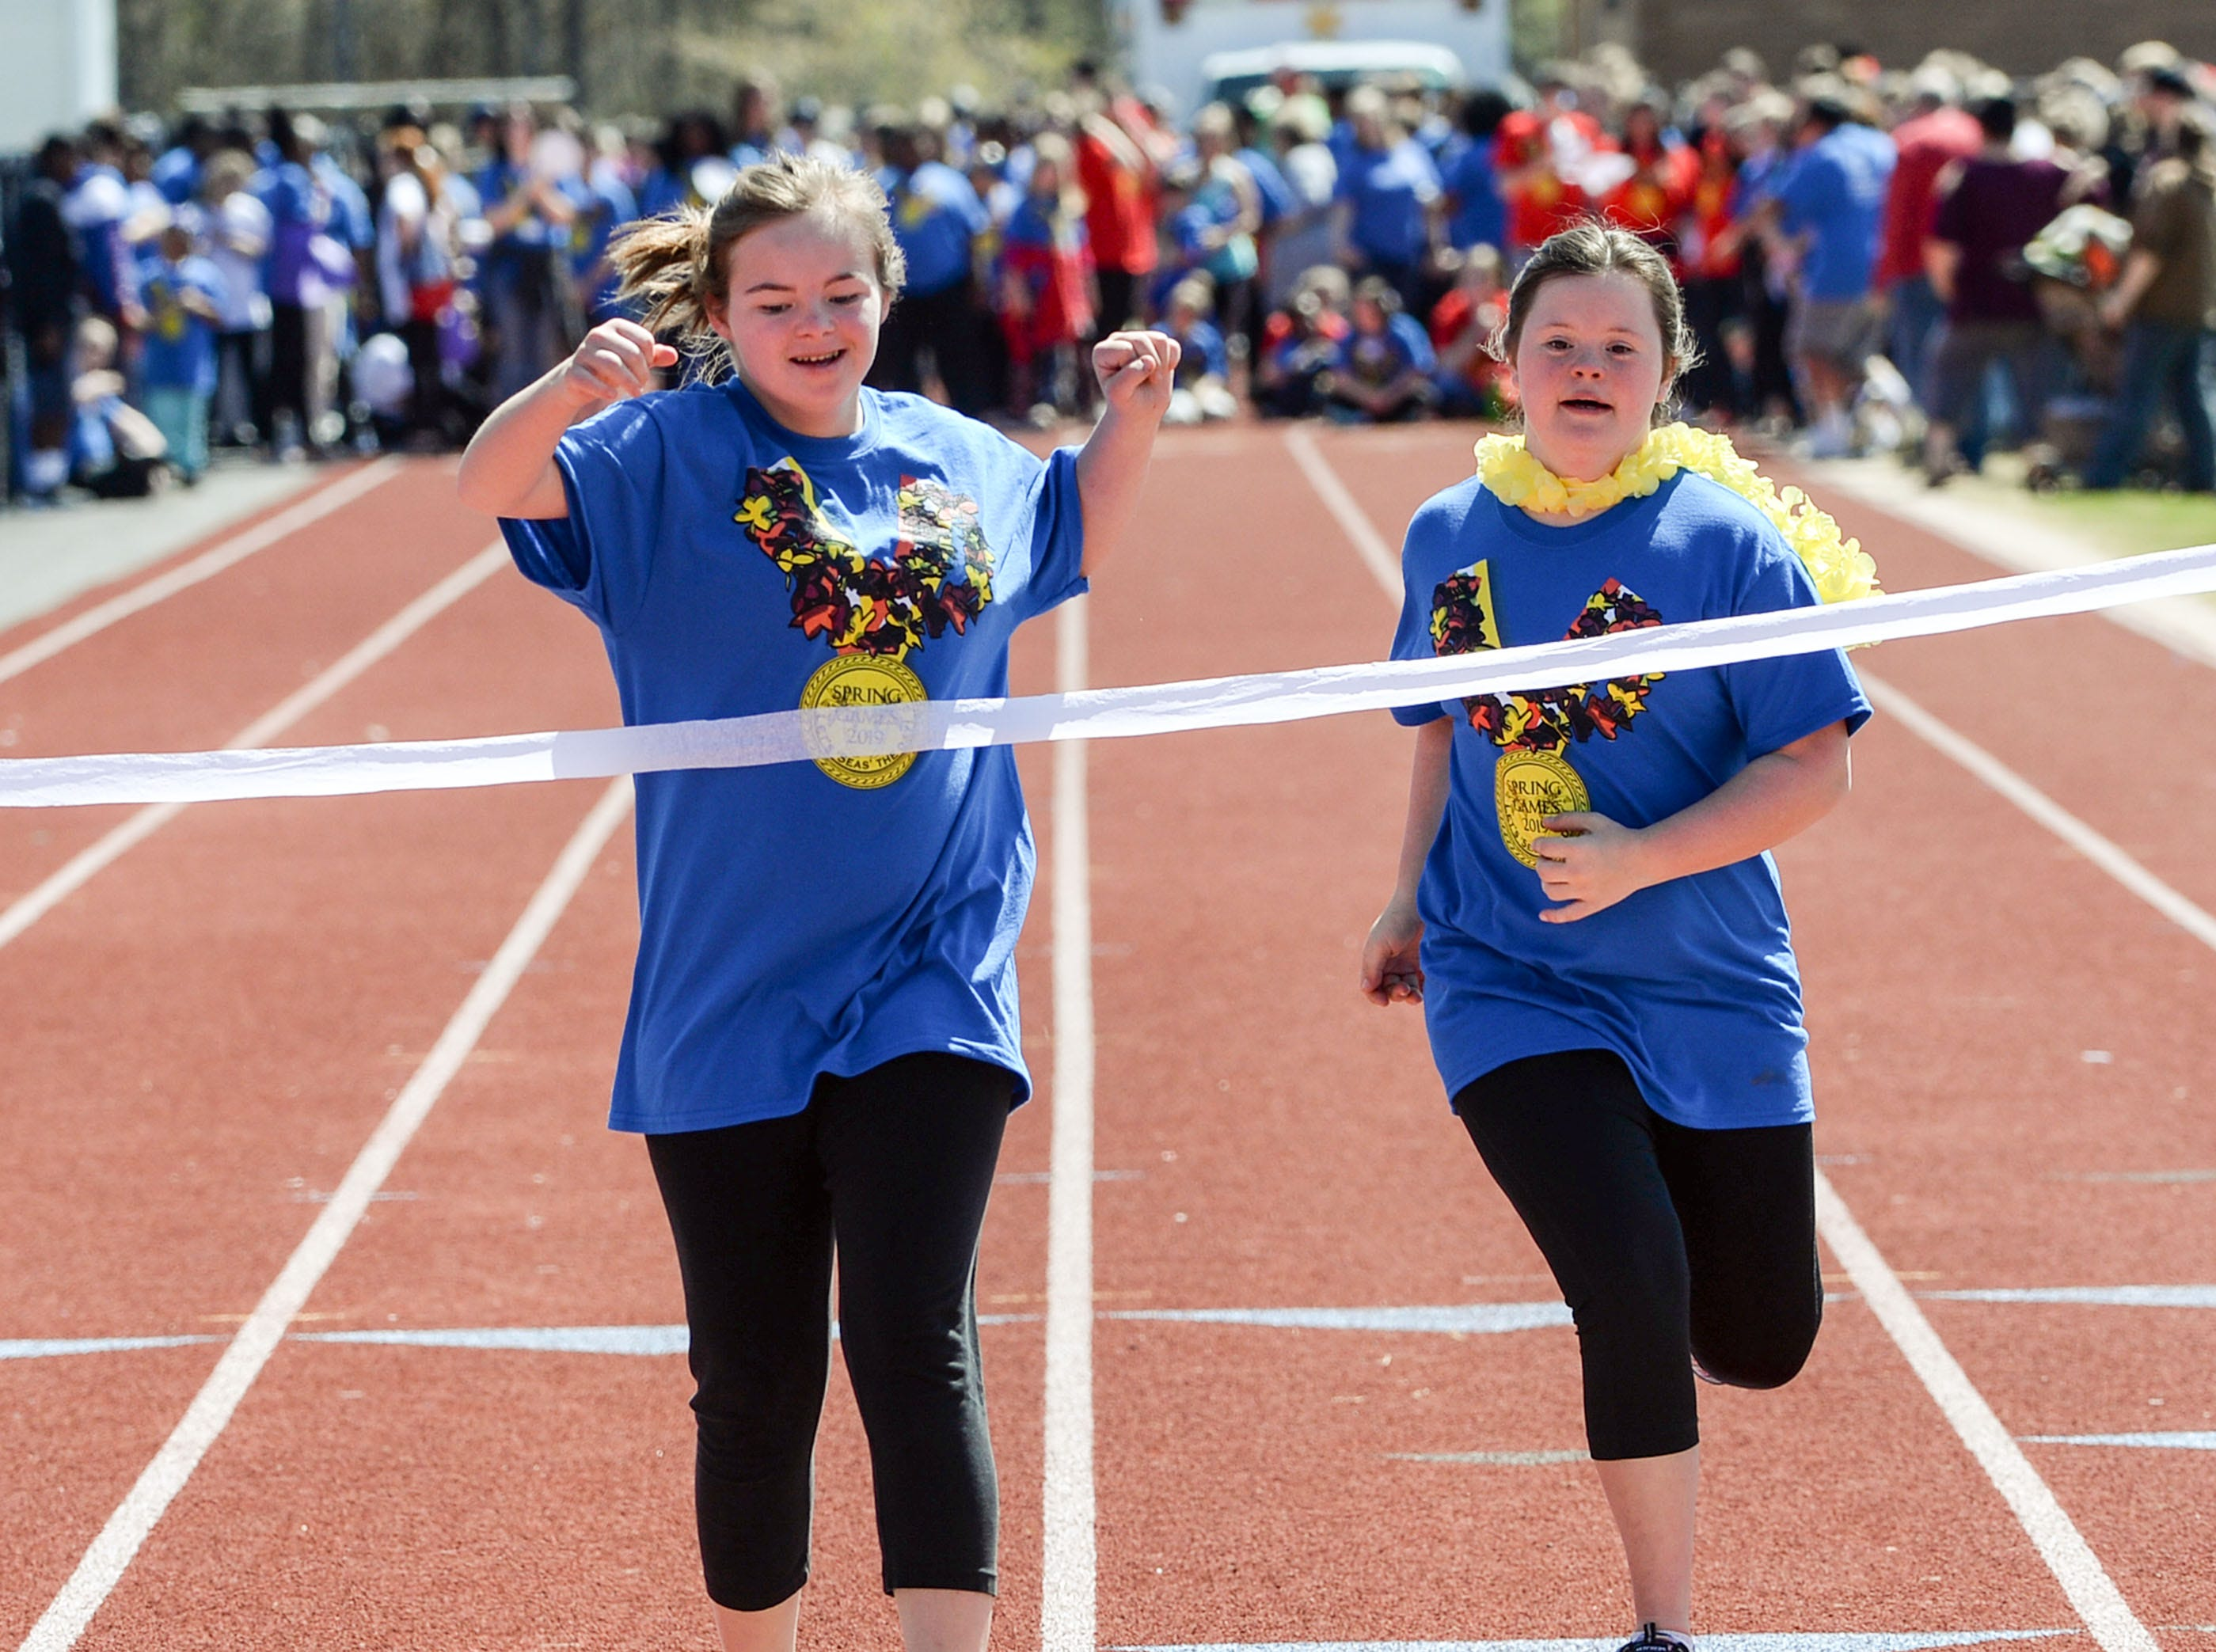 Emily Dove, left, of McCants Middle School in Anderson runs ahead of Gracie Peeples of Honea Path Middle School in the 100 yard dash during the Special Olympics South Carolina Area 14 Spring Games at Marlee Gambrell field at Belton-Honea Path High School Wednesday.